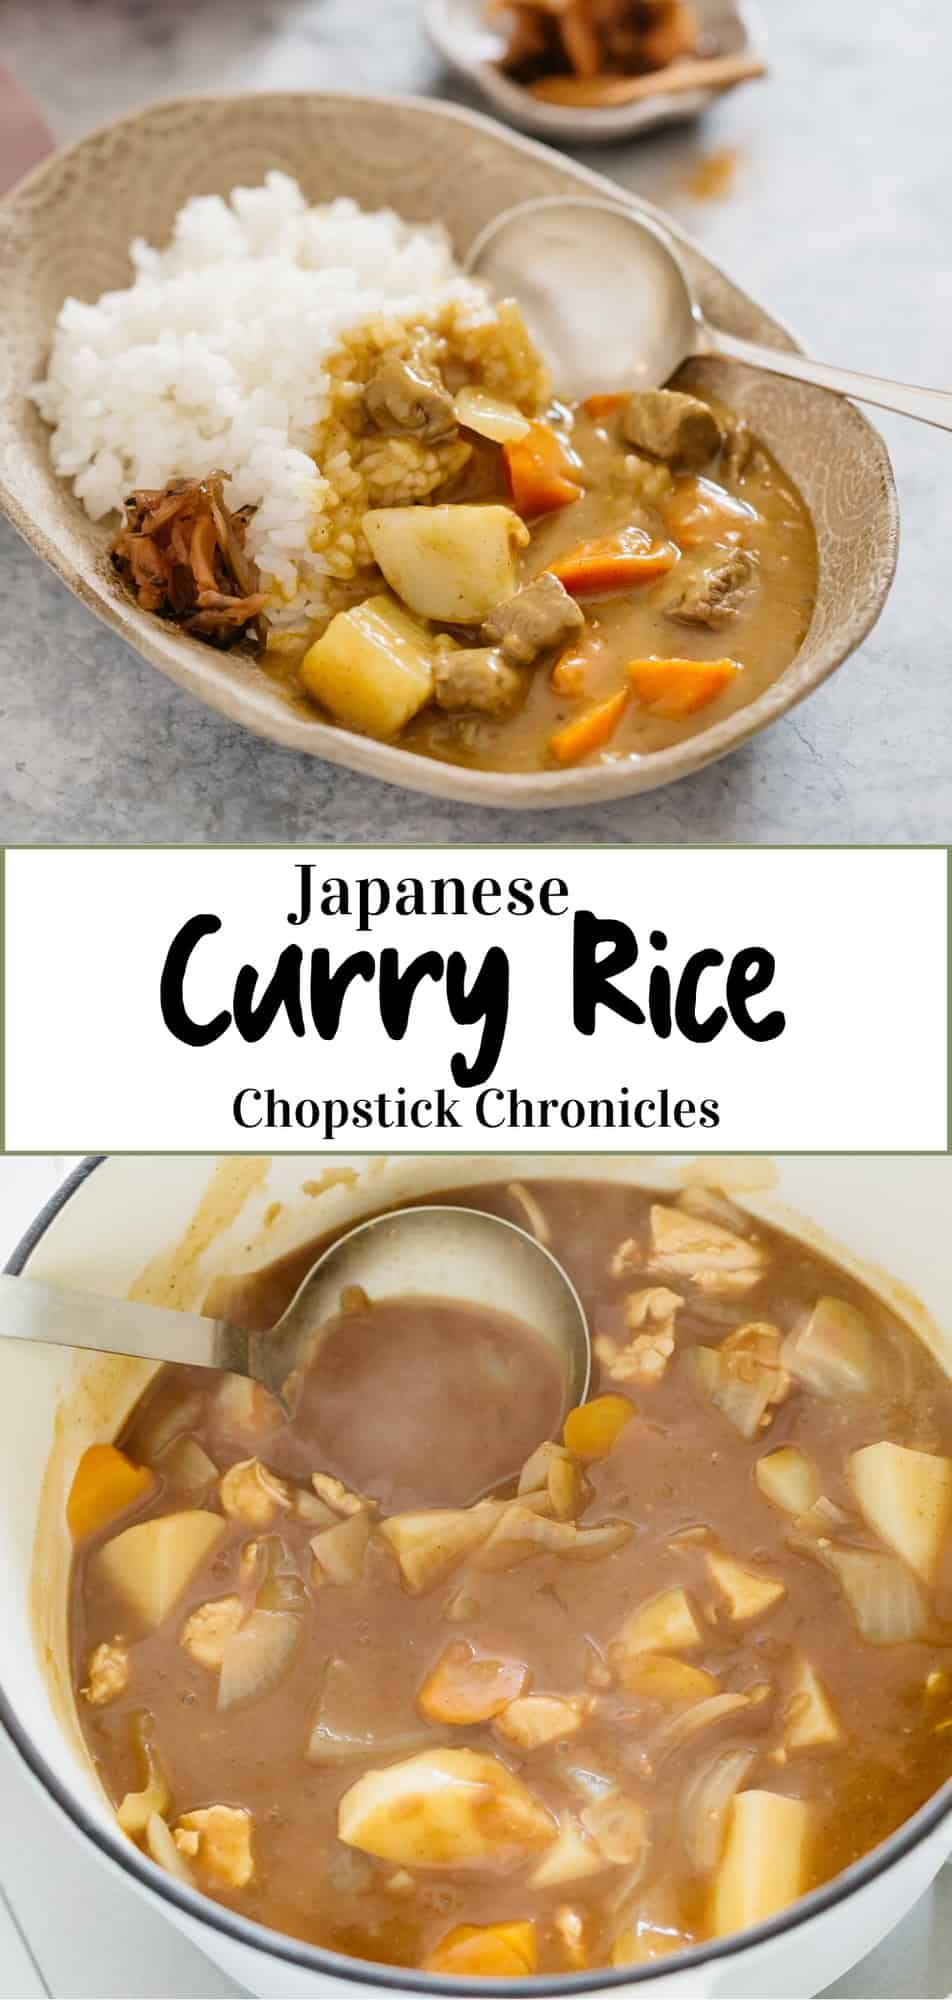 Japanese Curry Rice Recipe In 2020 Japanese Curry Recipes Curry Rice Recipes